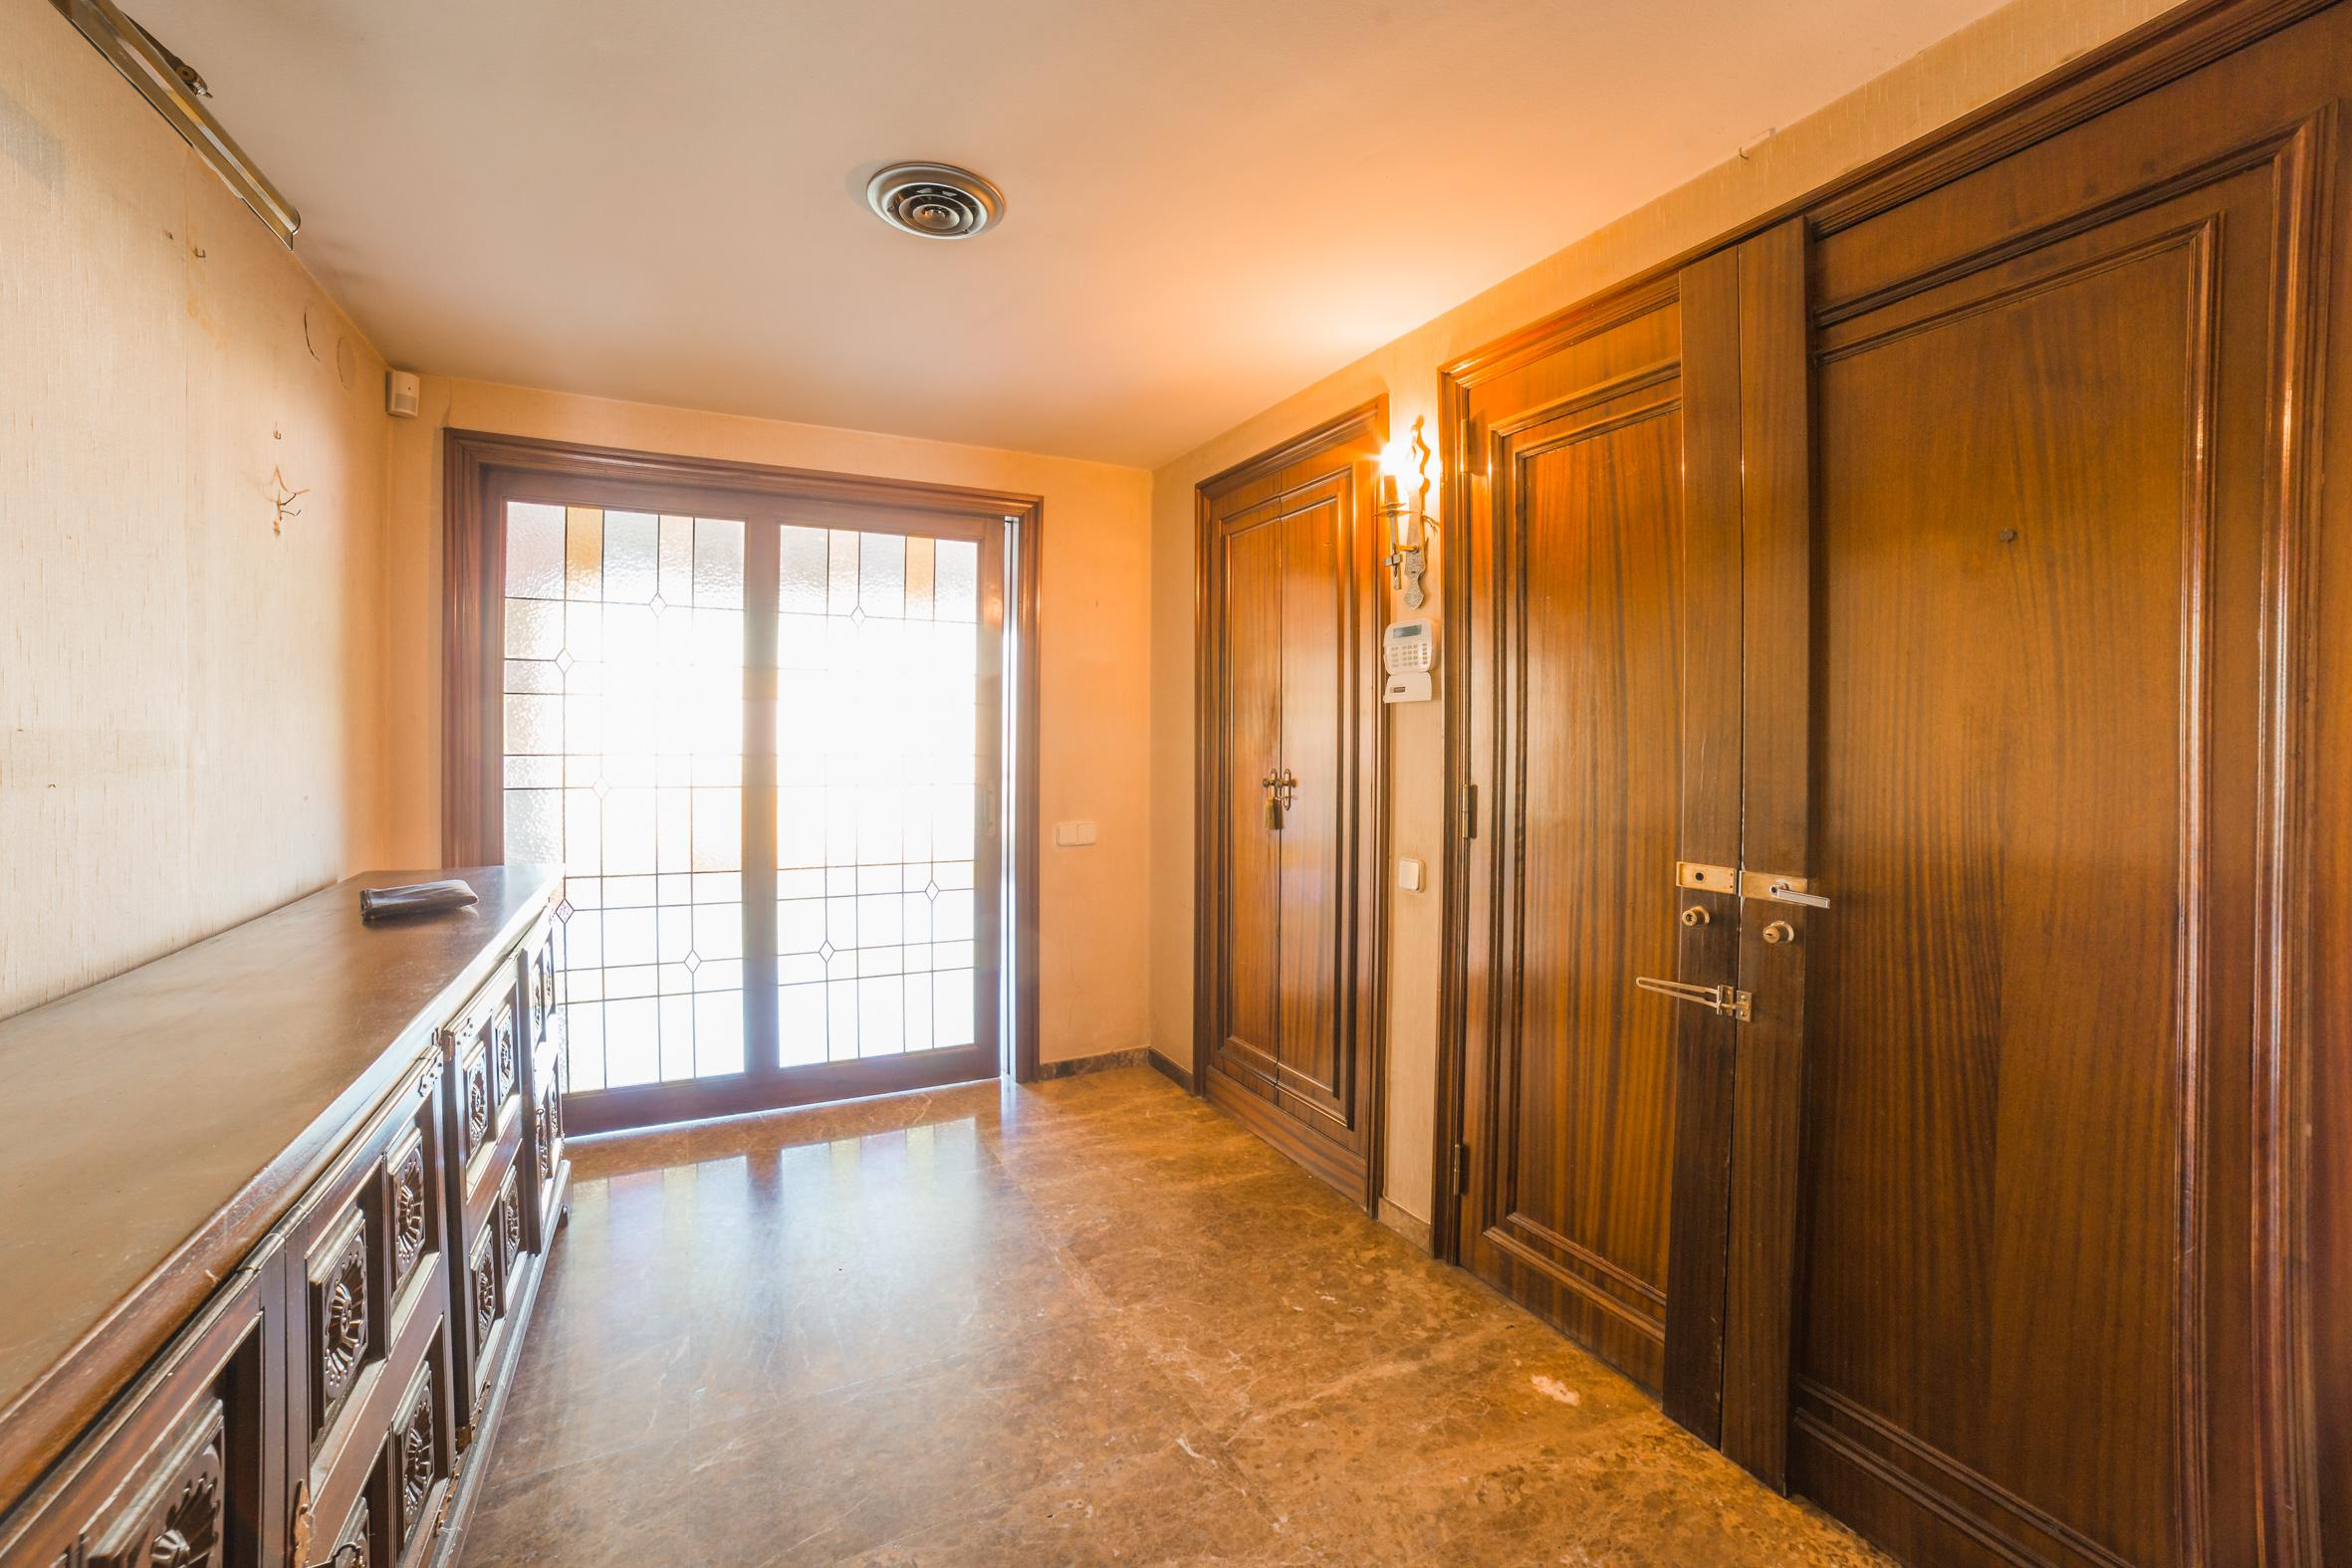 248988 Flat for sale in Les Corts, Les Corts 11